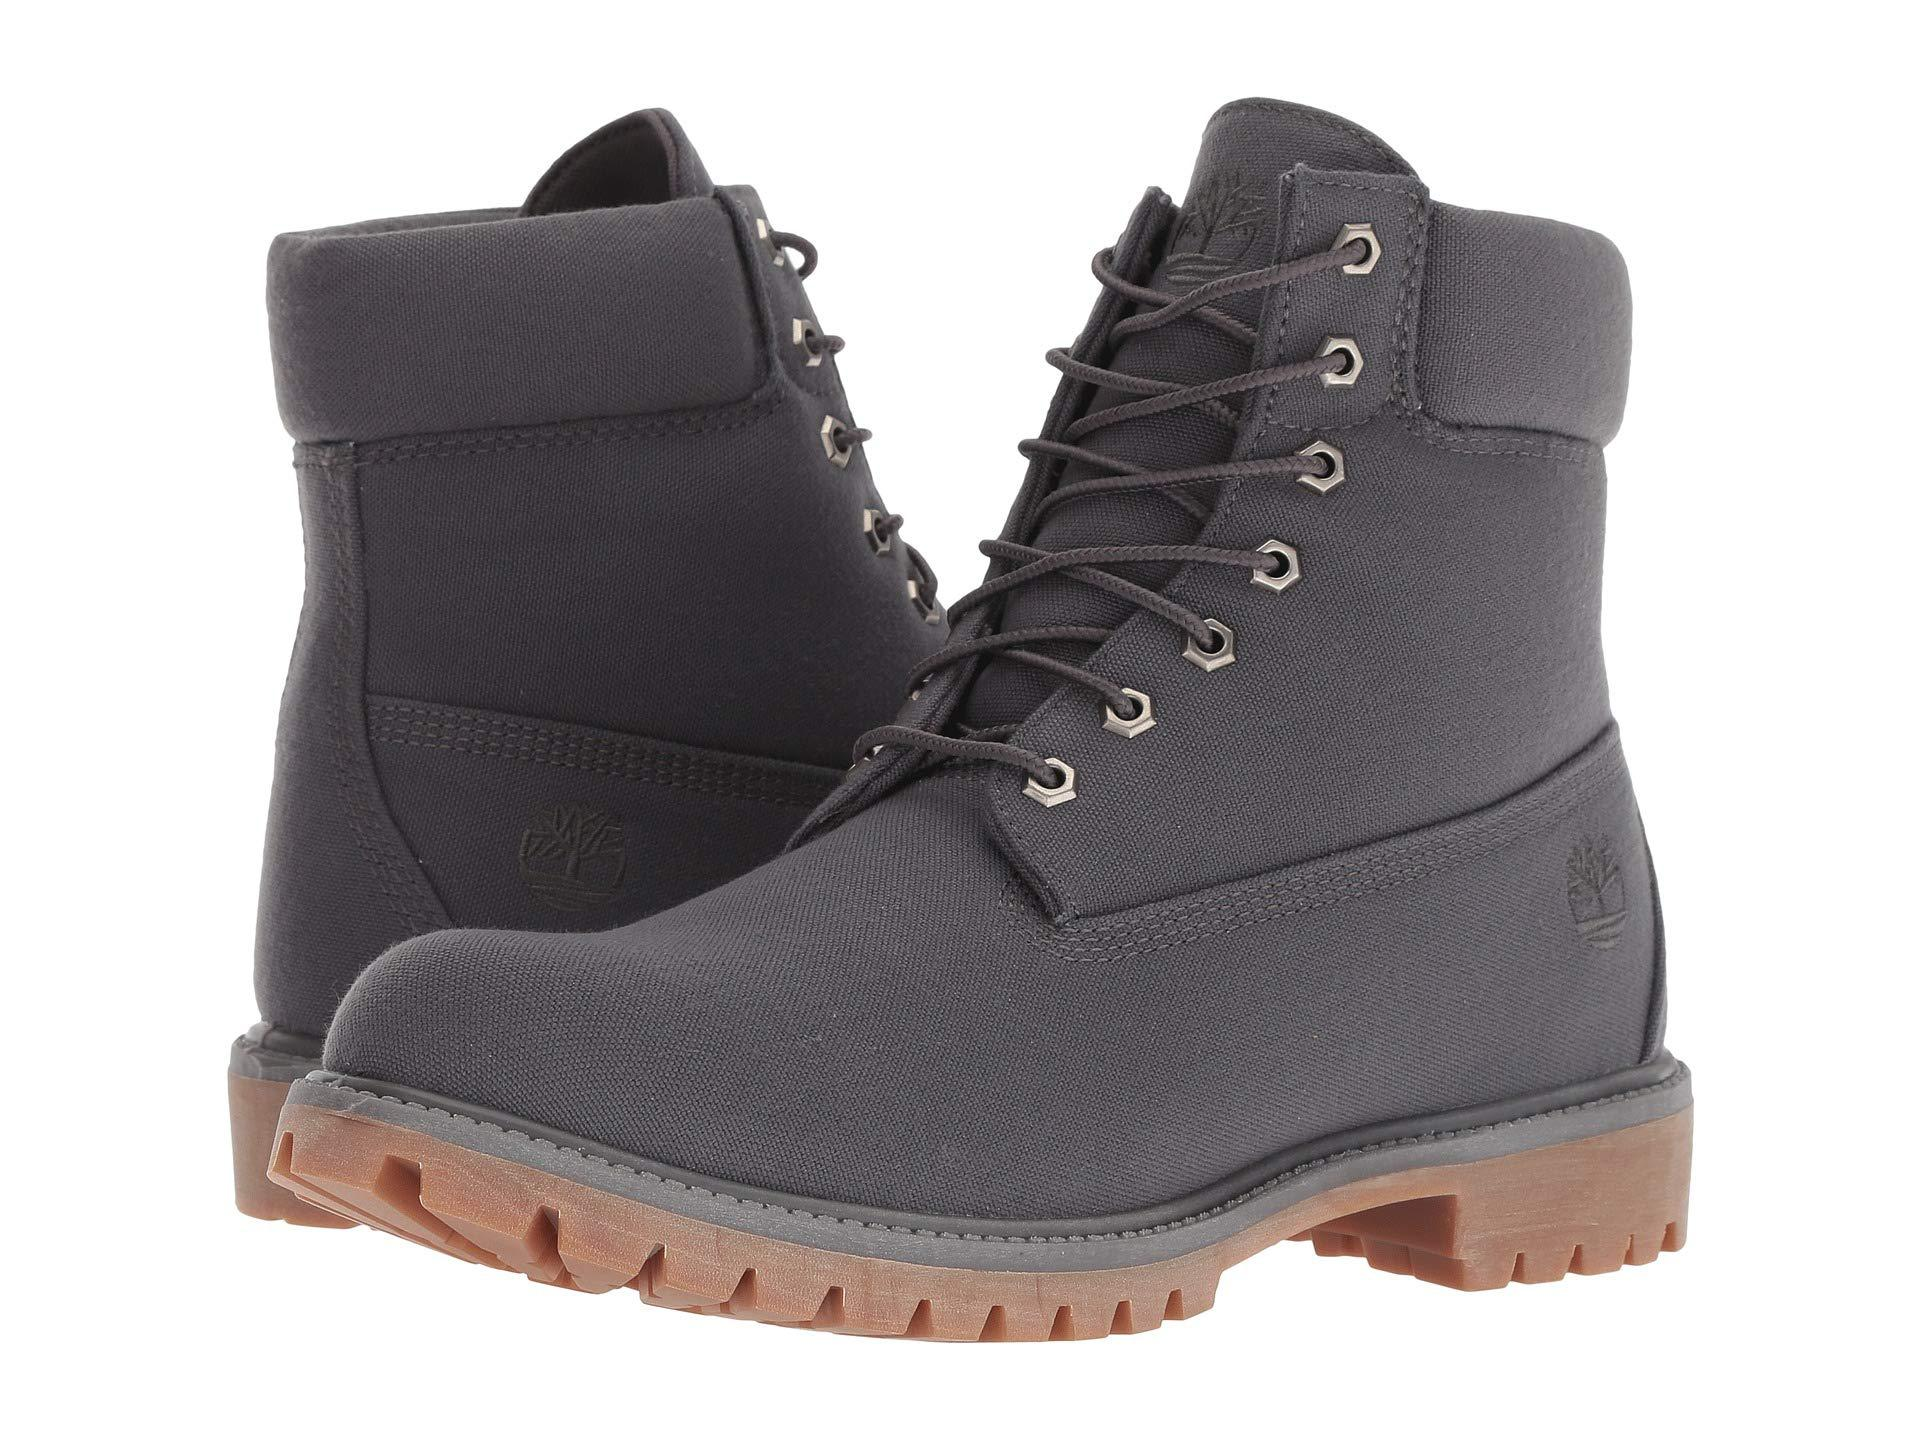 Pelágico pedal oído  Timberland 6 Premium Canvas Boot (forged Iron Canvas) Men's Lace-up Boots  for Men - Lyst